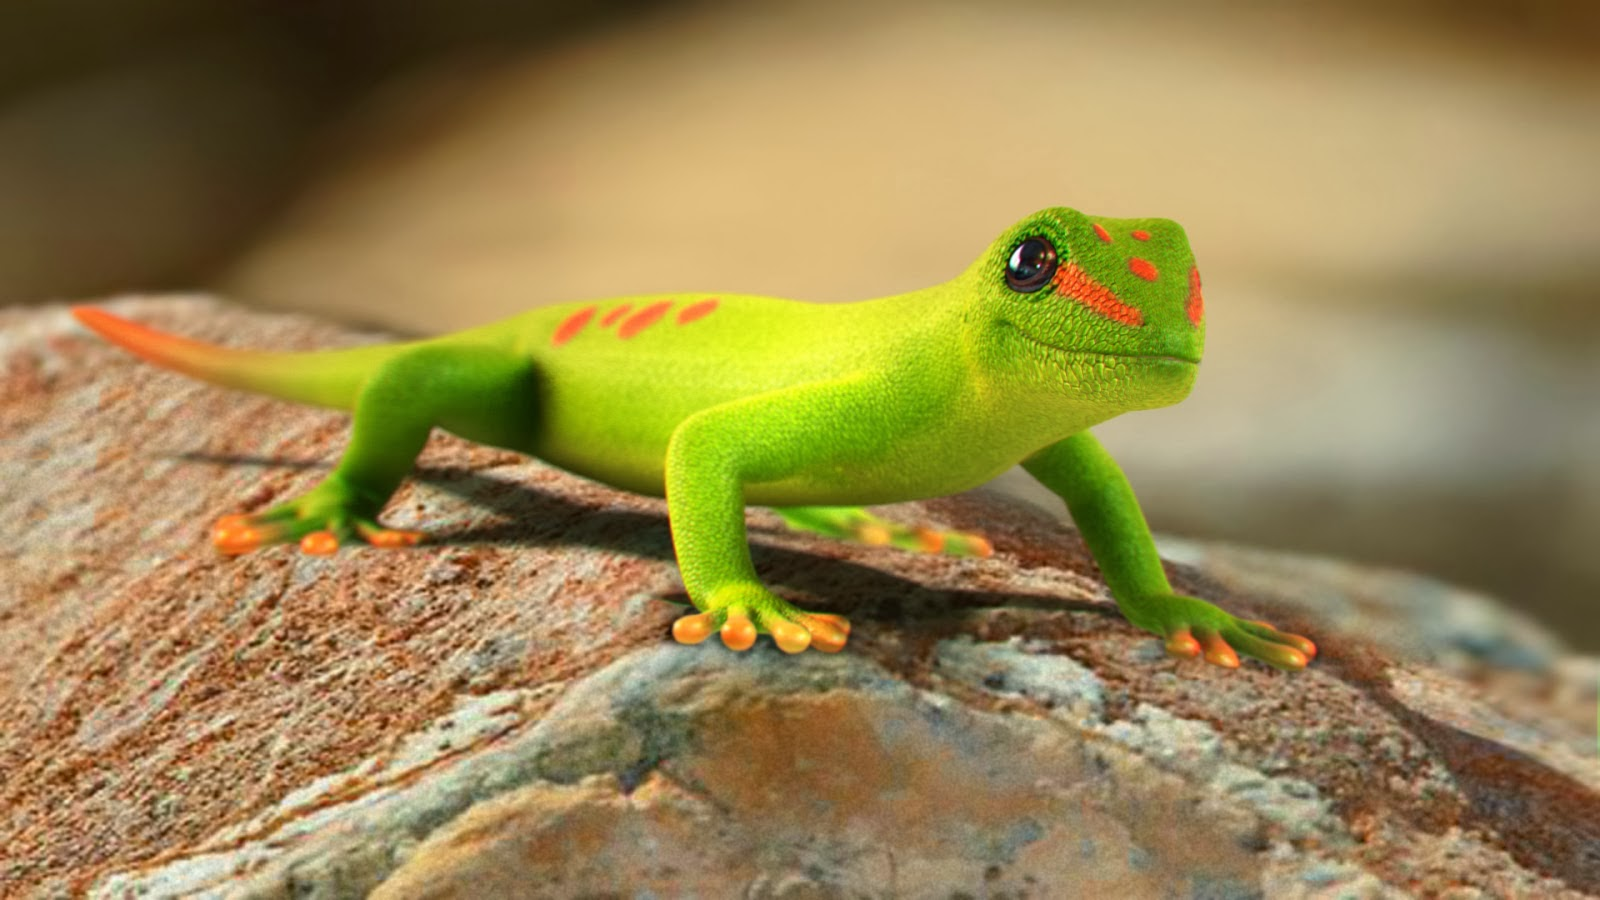 Gecko Wallpapers Desktop 1600x900